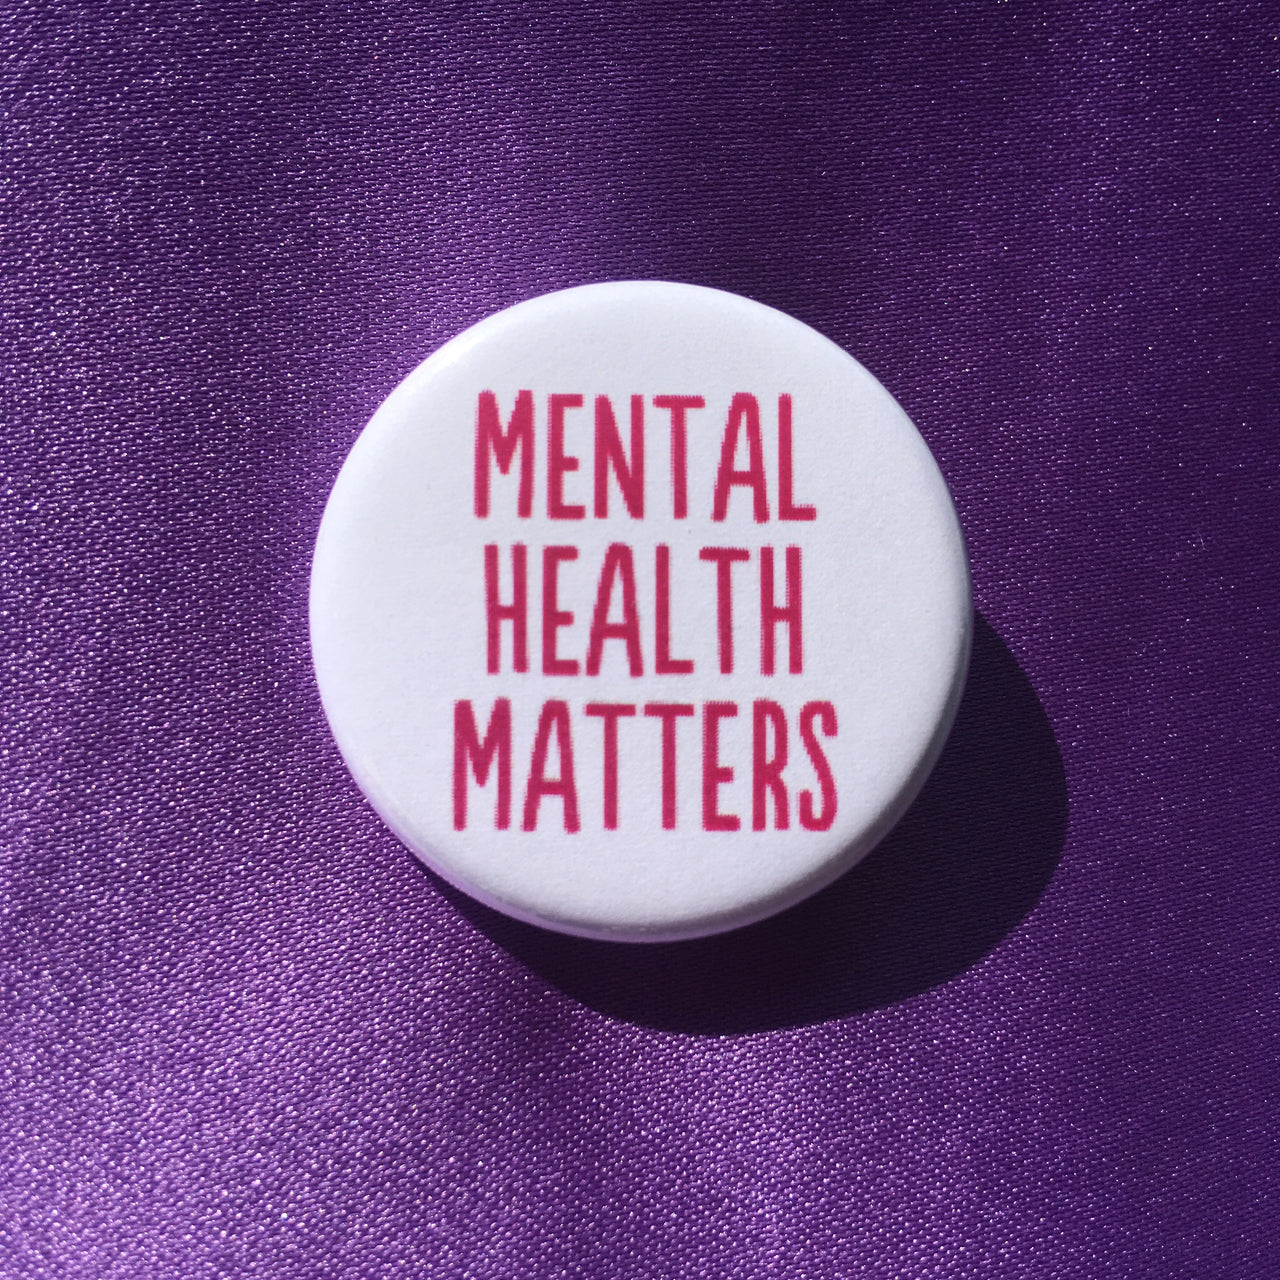 Mental health matters - Radical Buttons